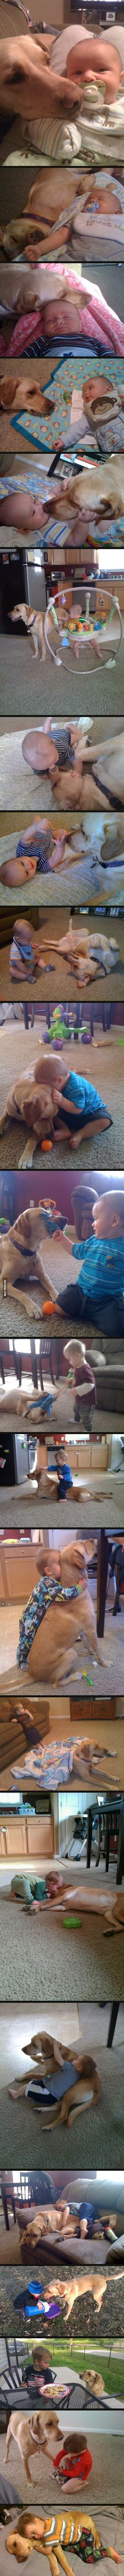 A kid and his dog. So sweet